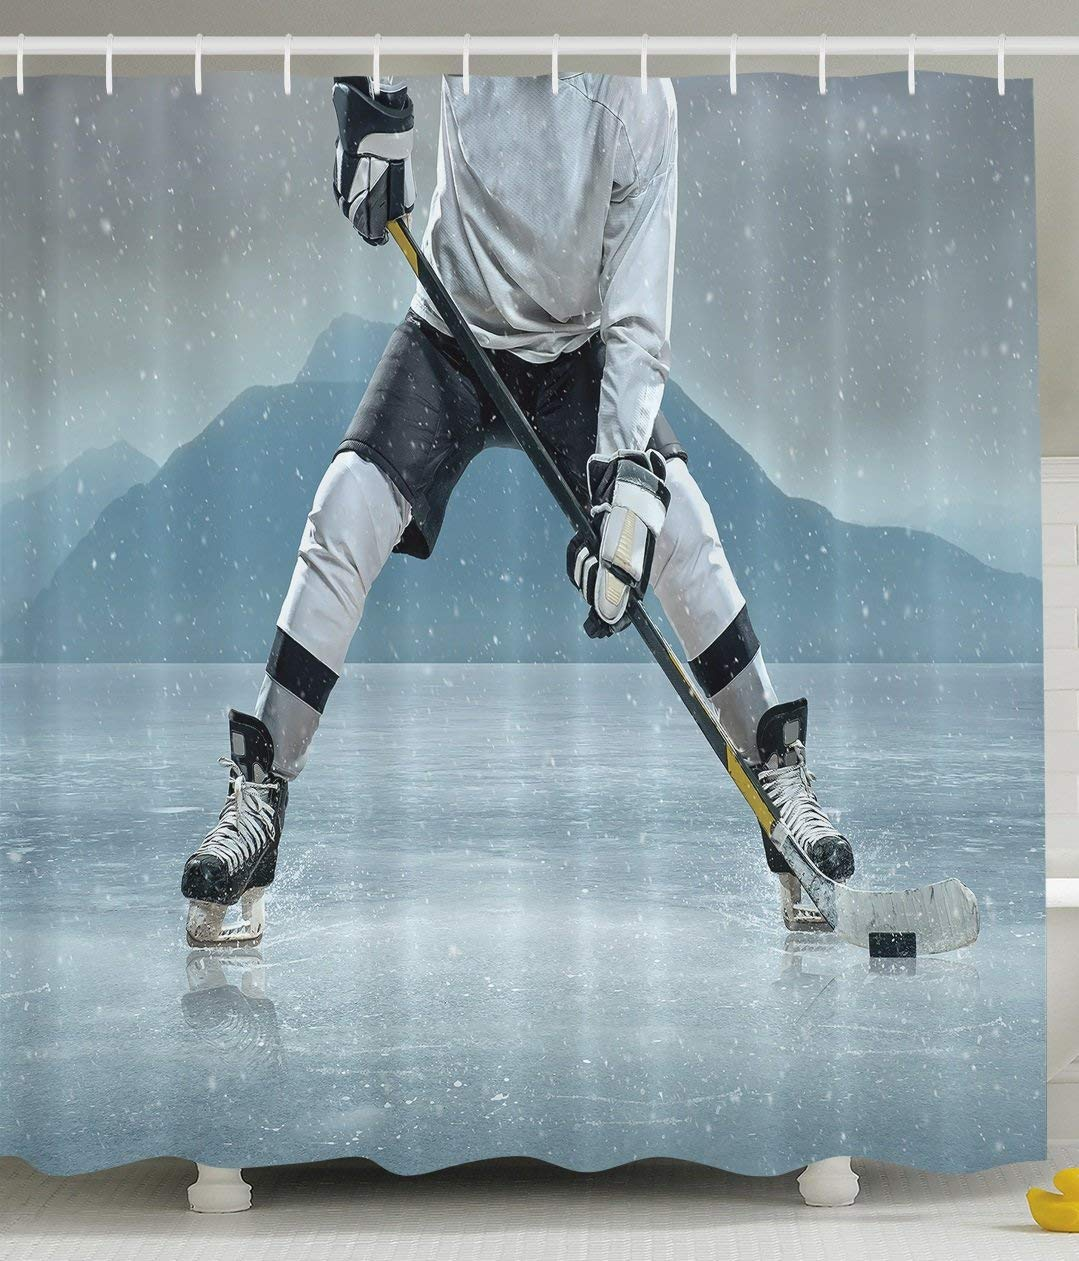 Husband Ice Hockey Player Skating Activity Outdoors Equipment Snow Game Winter Team Helmet Rink Man Sports Shower Curtain Famous For High Quality Raw Materials Full Range Of Specifications And Sizes And Great Variety Of Designs And Colors